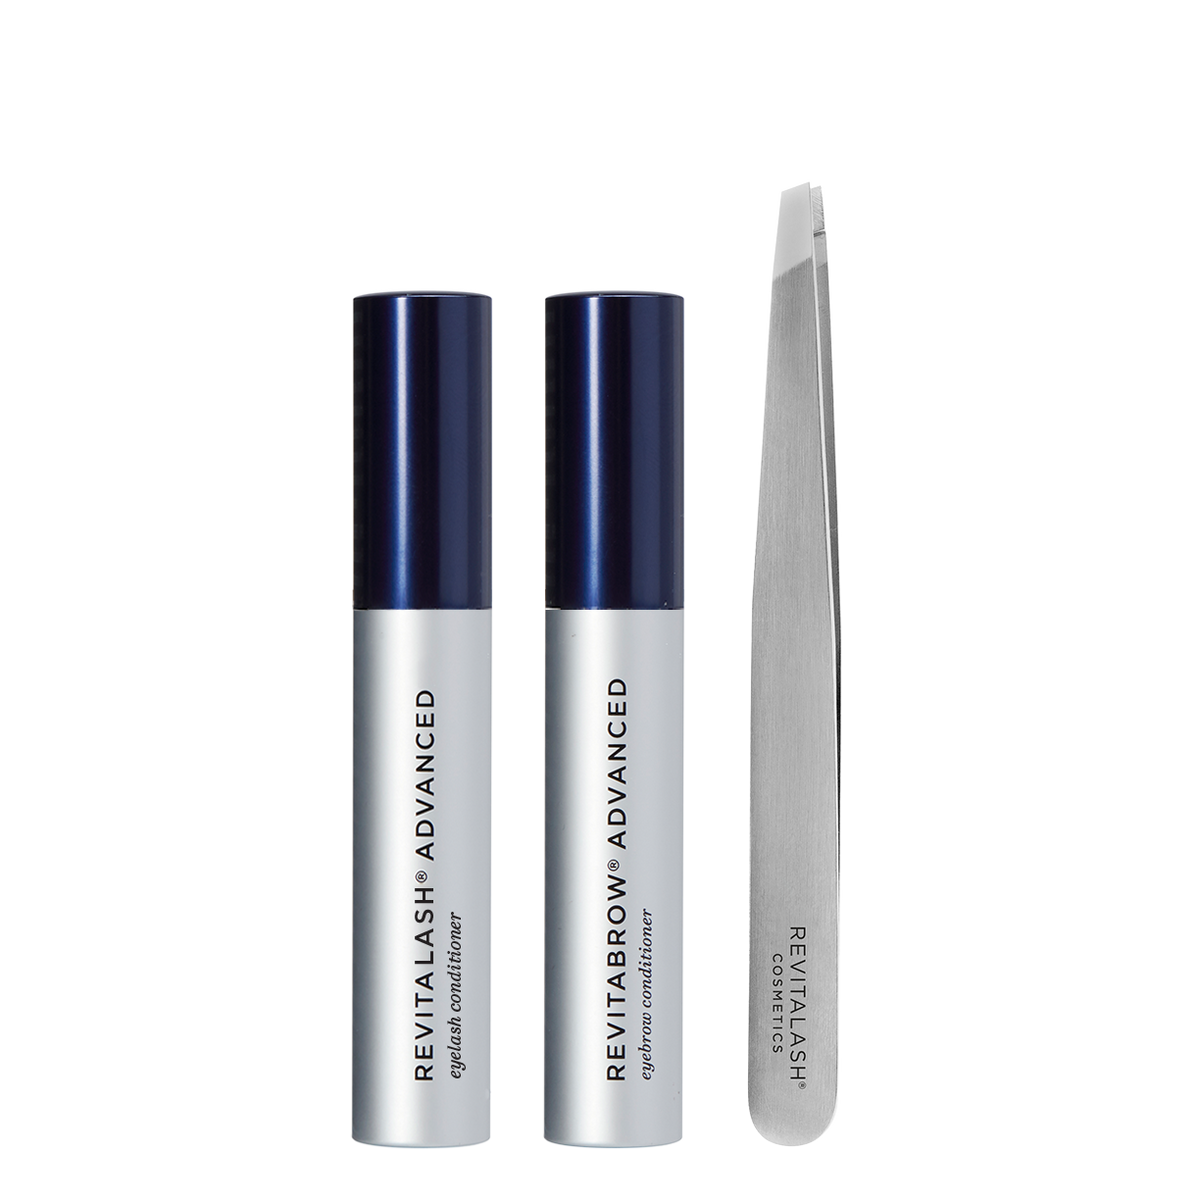 Image of RevitaLash Advanced, RevitaBrow Advanced, and Precision Tweezers